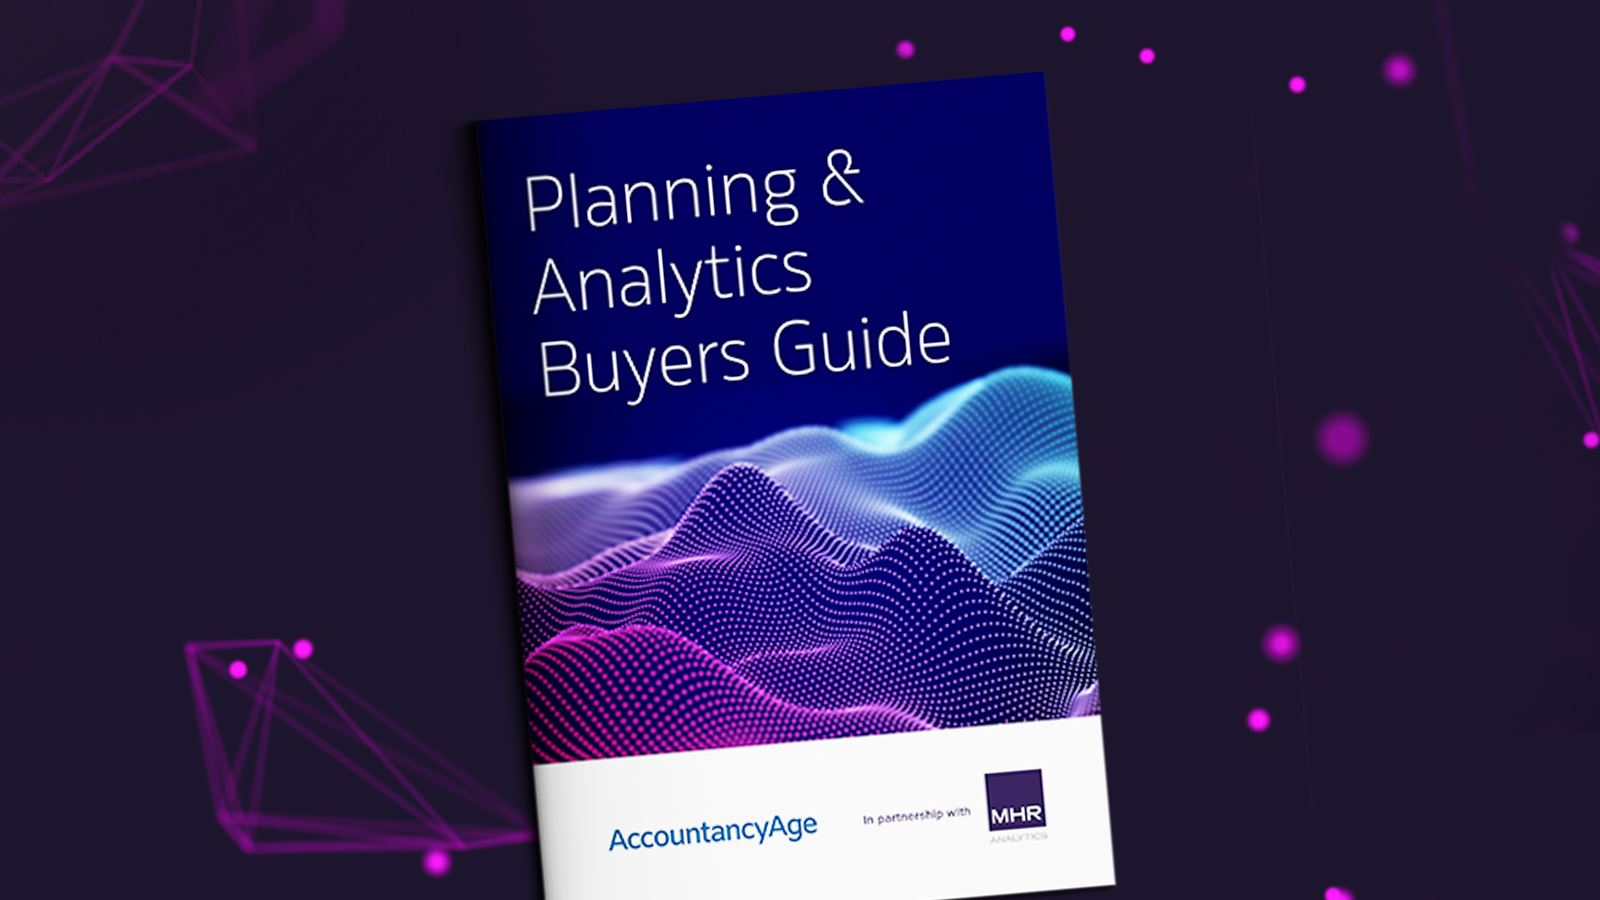 Planning and Analytics Buyers Guide